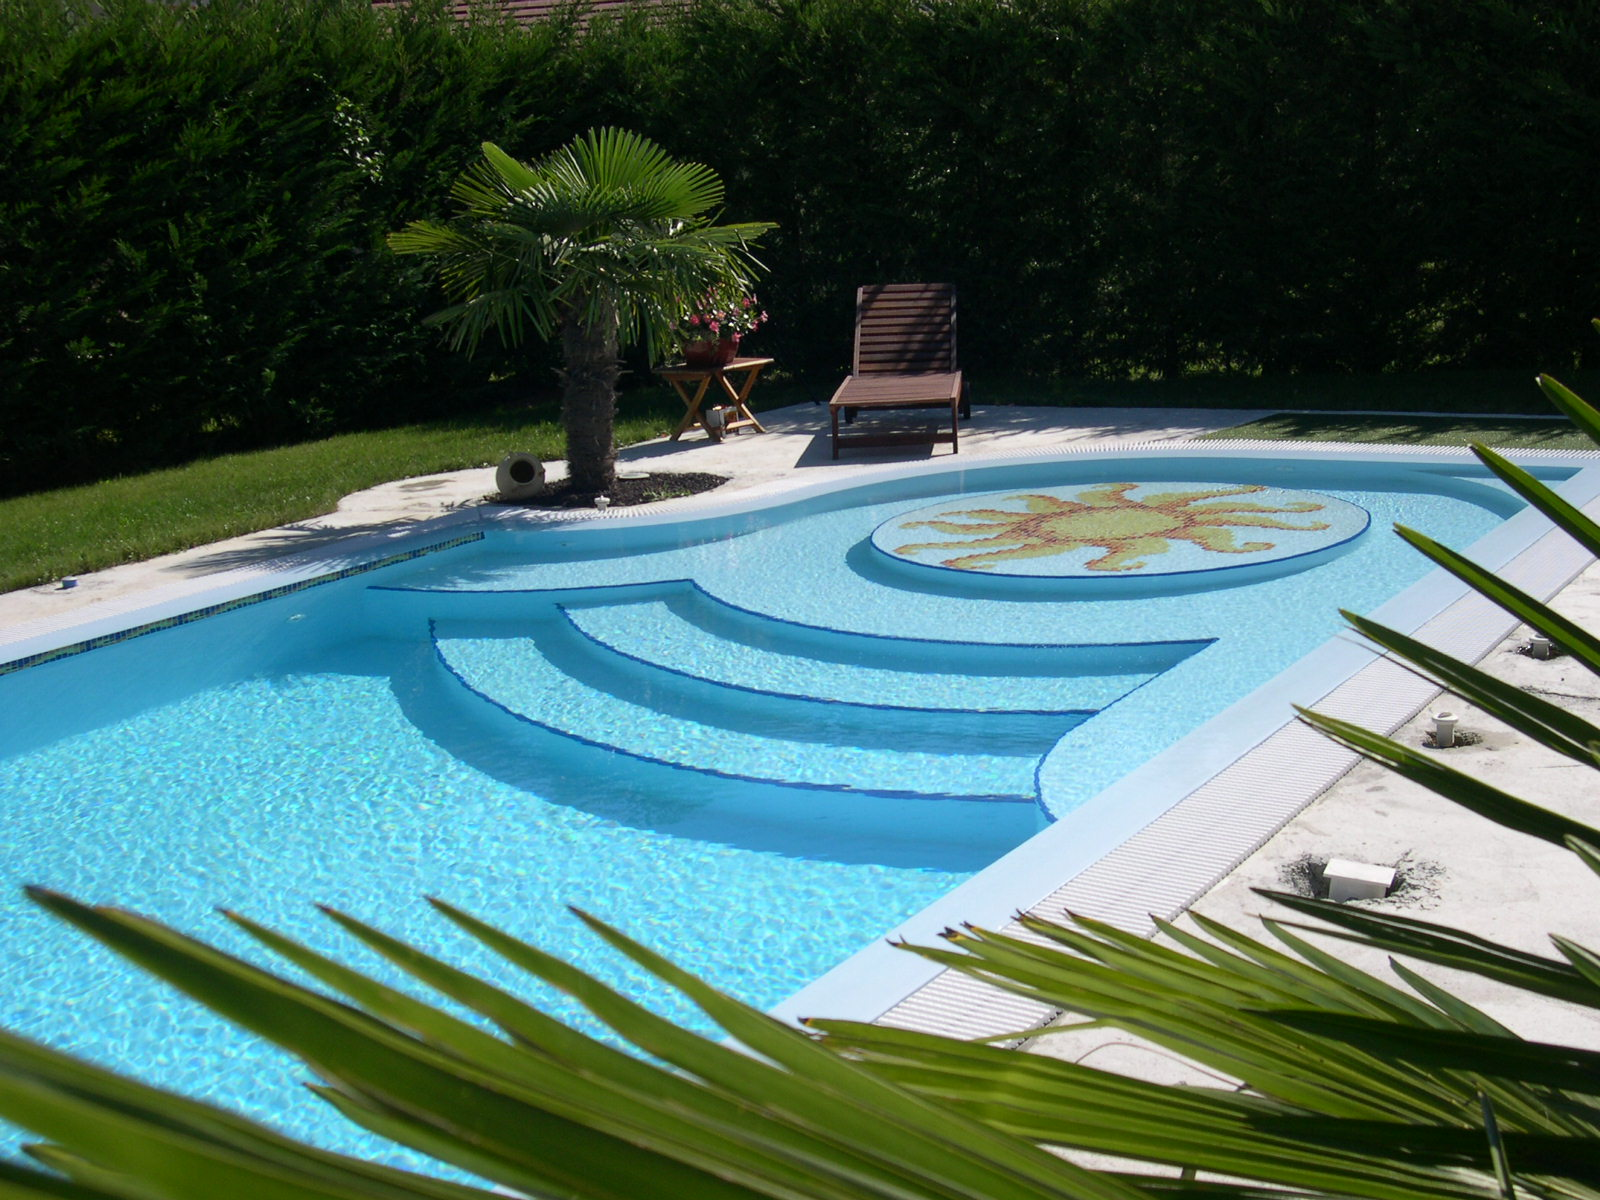 Que choisir piscine en coque ou piscine traditionnelle for Comparatif piscine coque ou beton